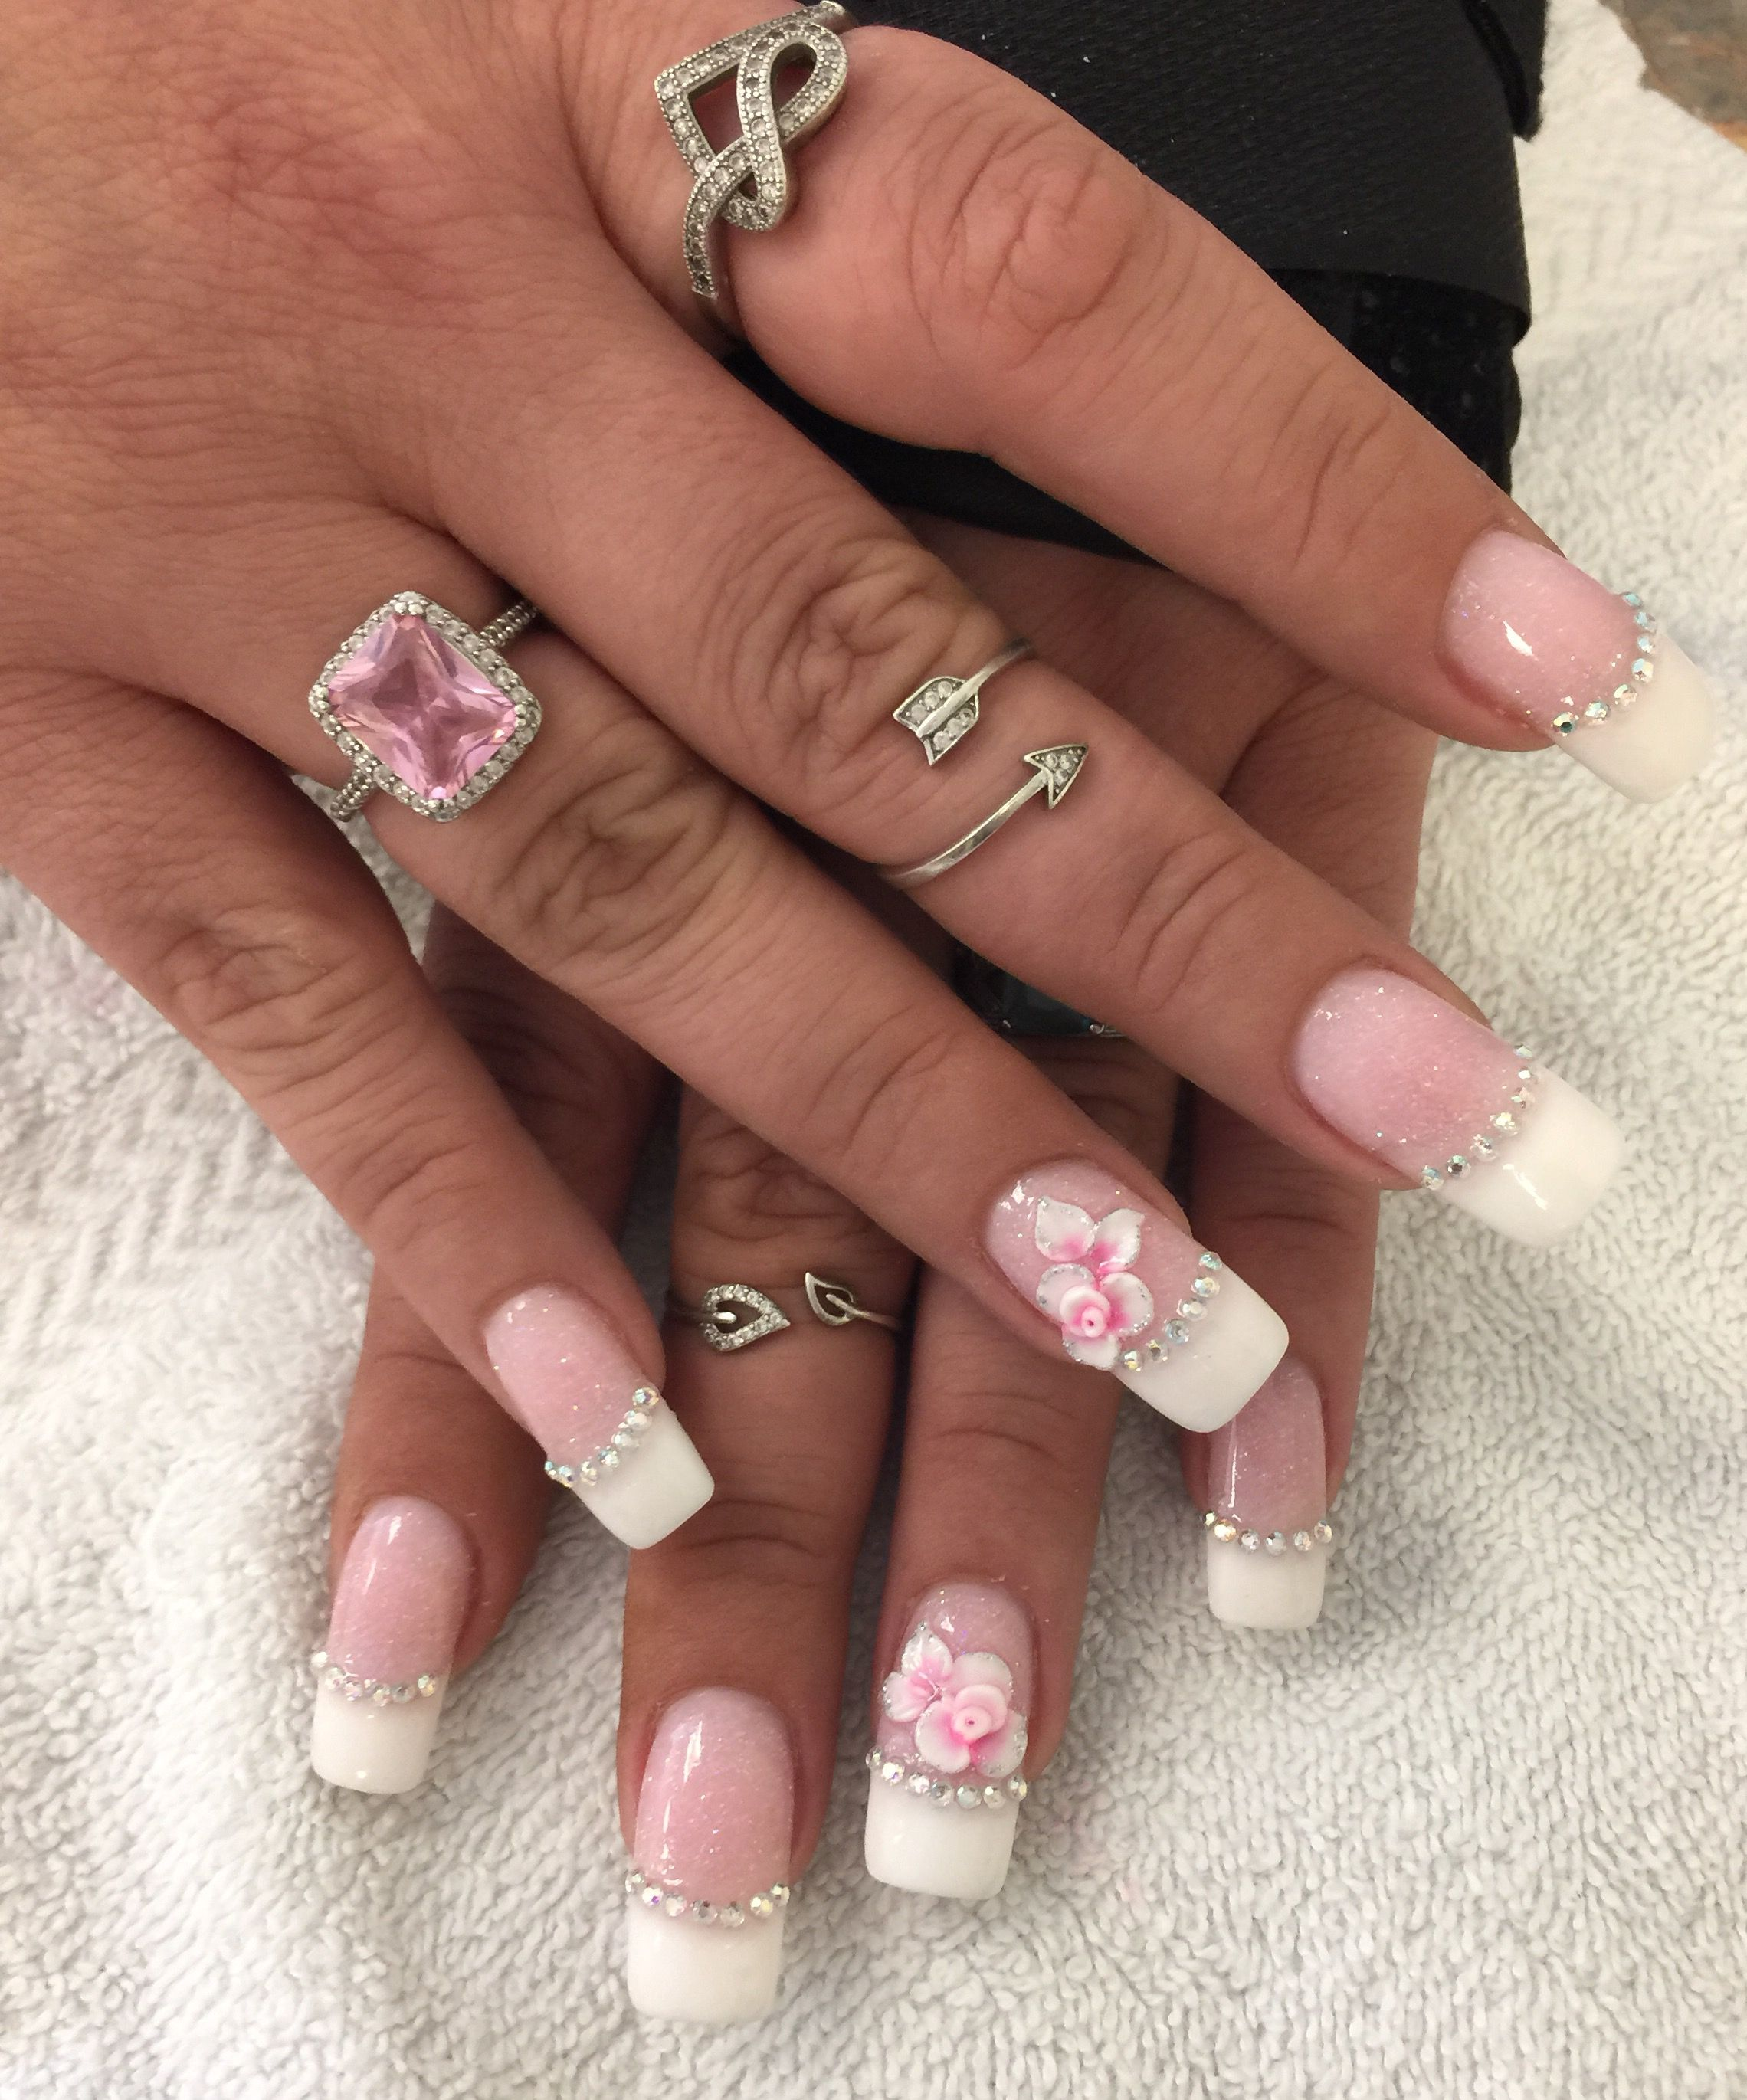 Nails 3d Designs French Manicure Rhinestones Pink And White 3d